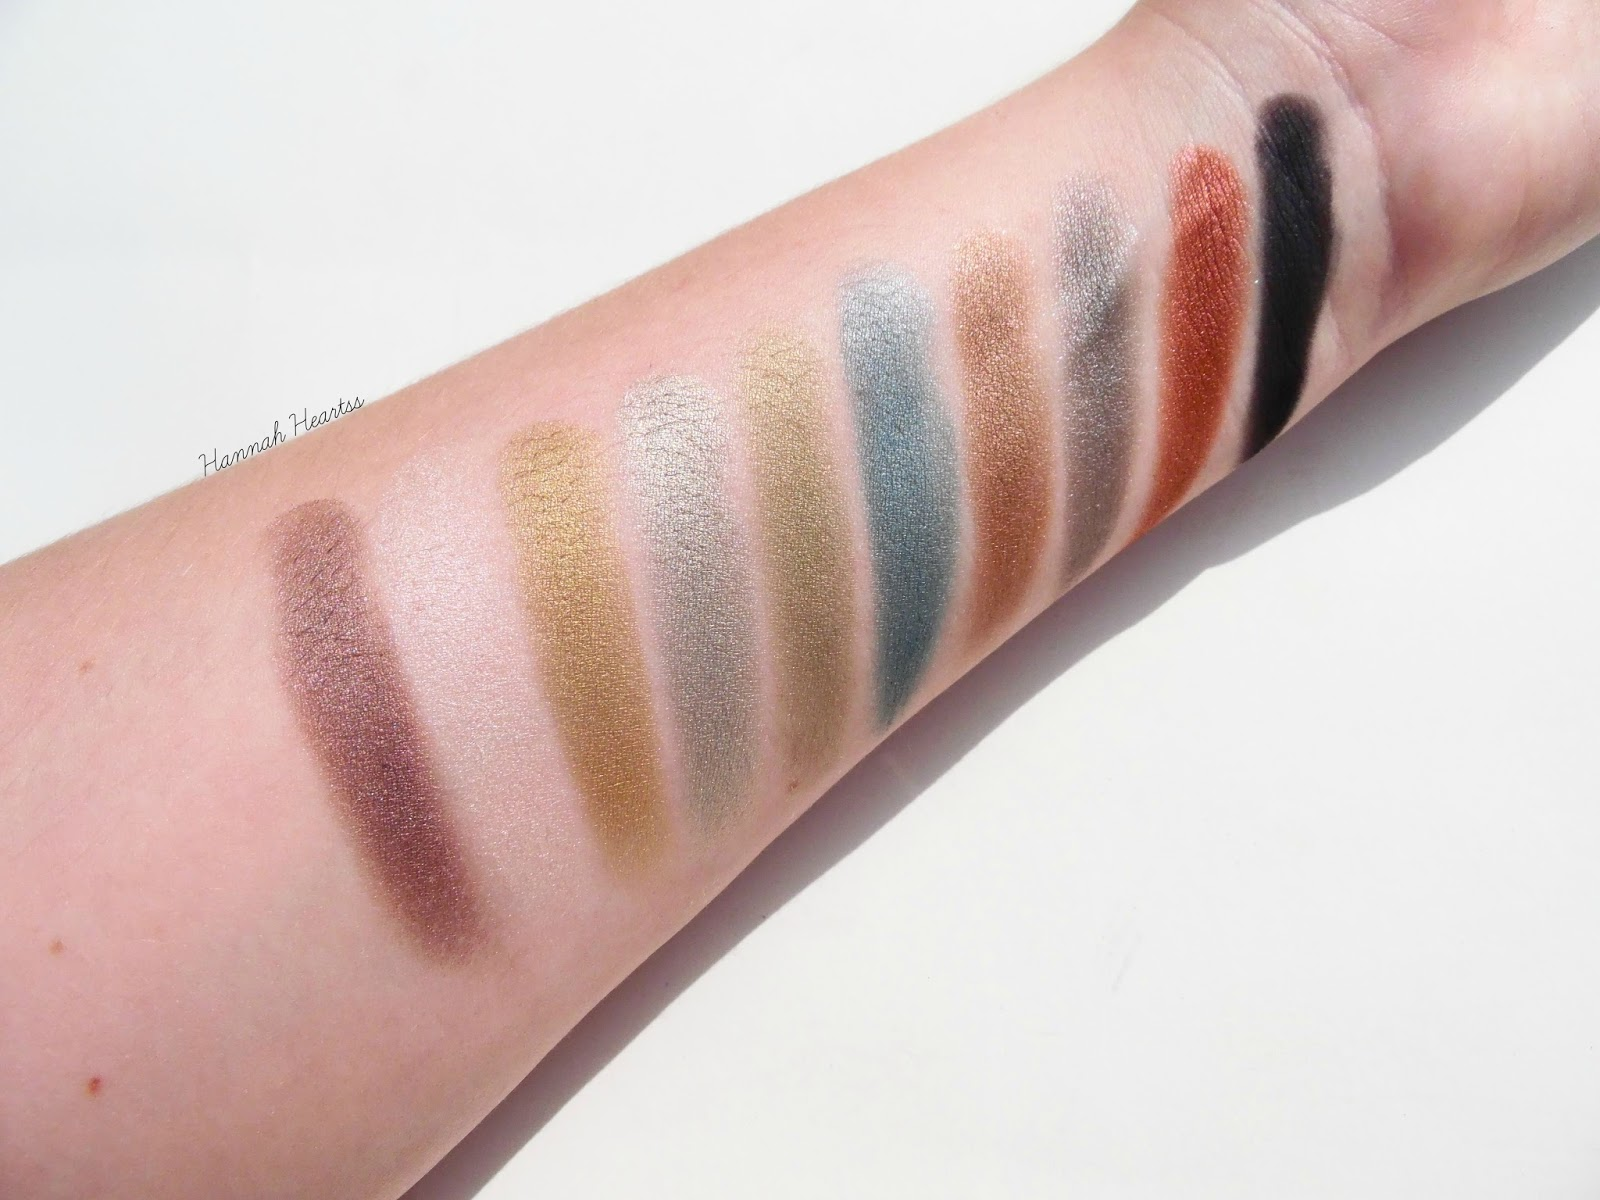 Zoeva Mixed Metals Palette Swatches